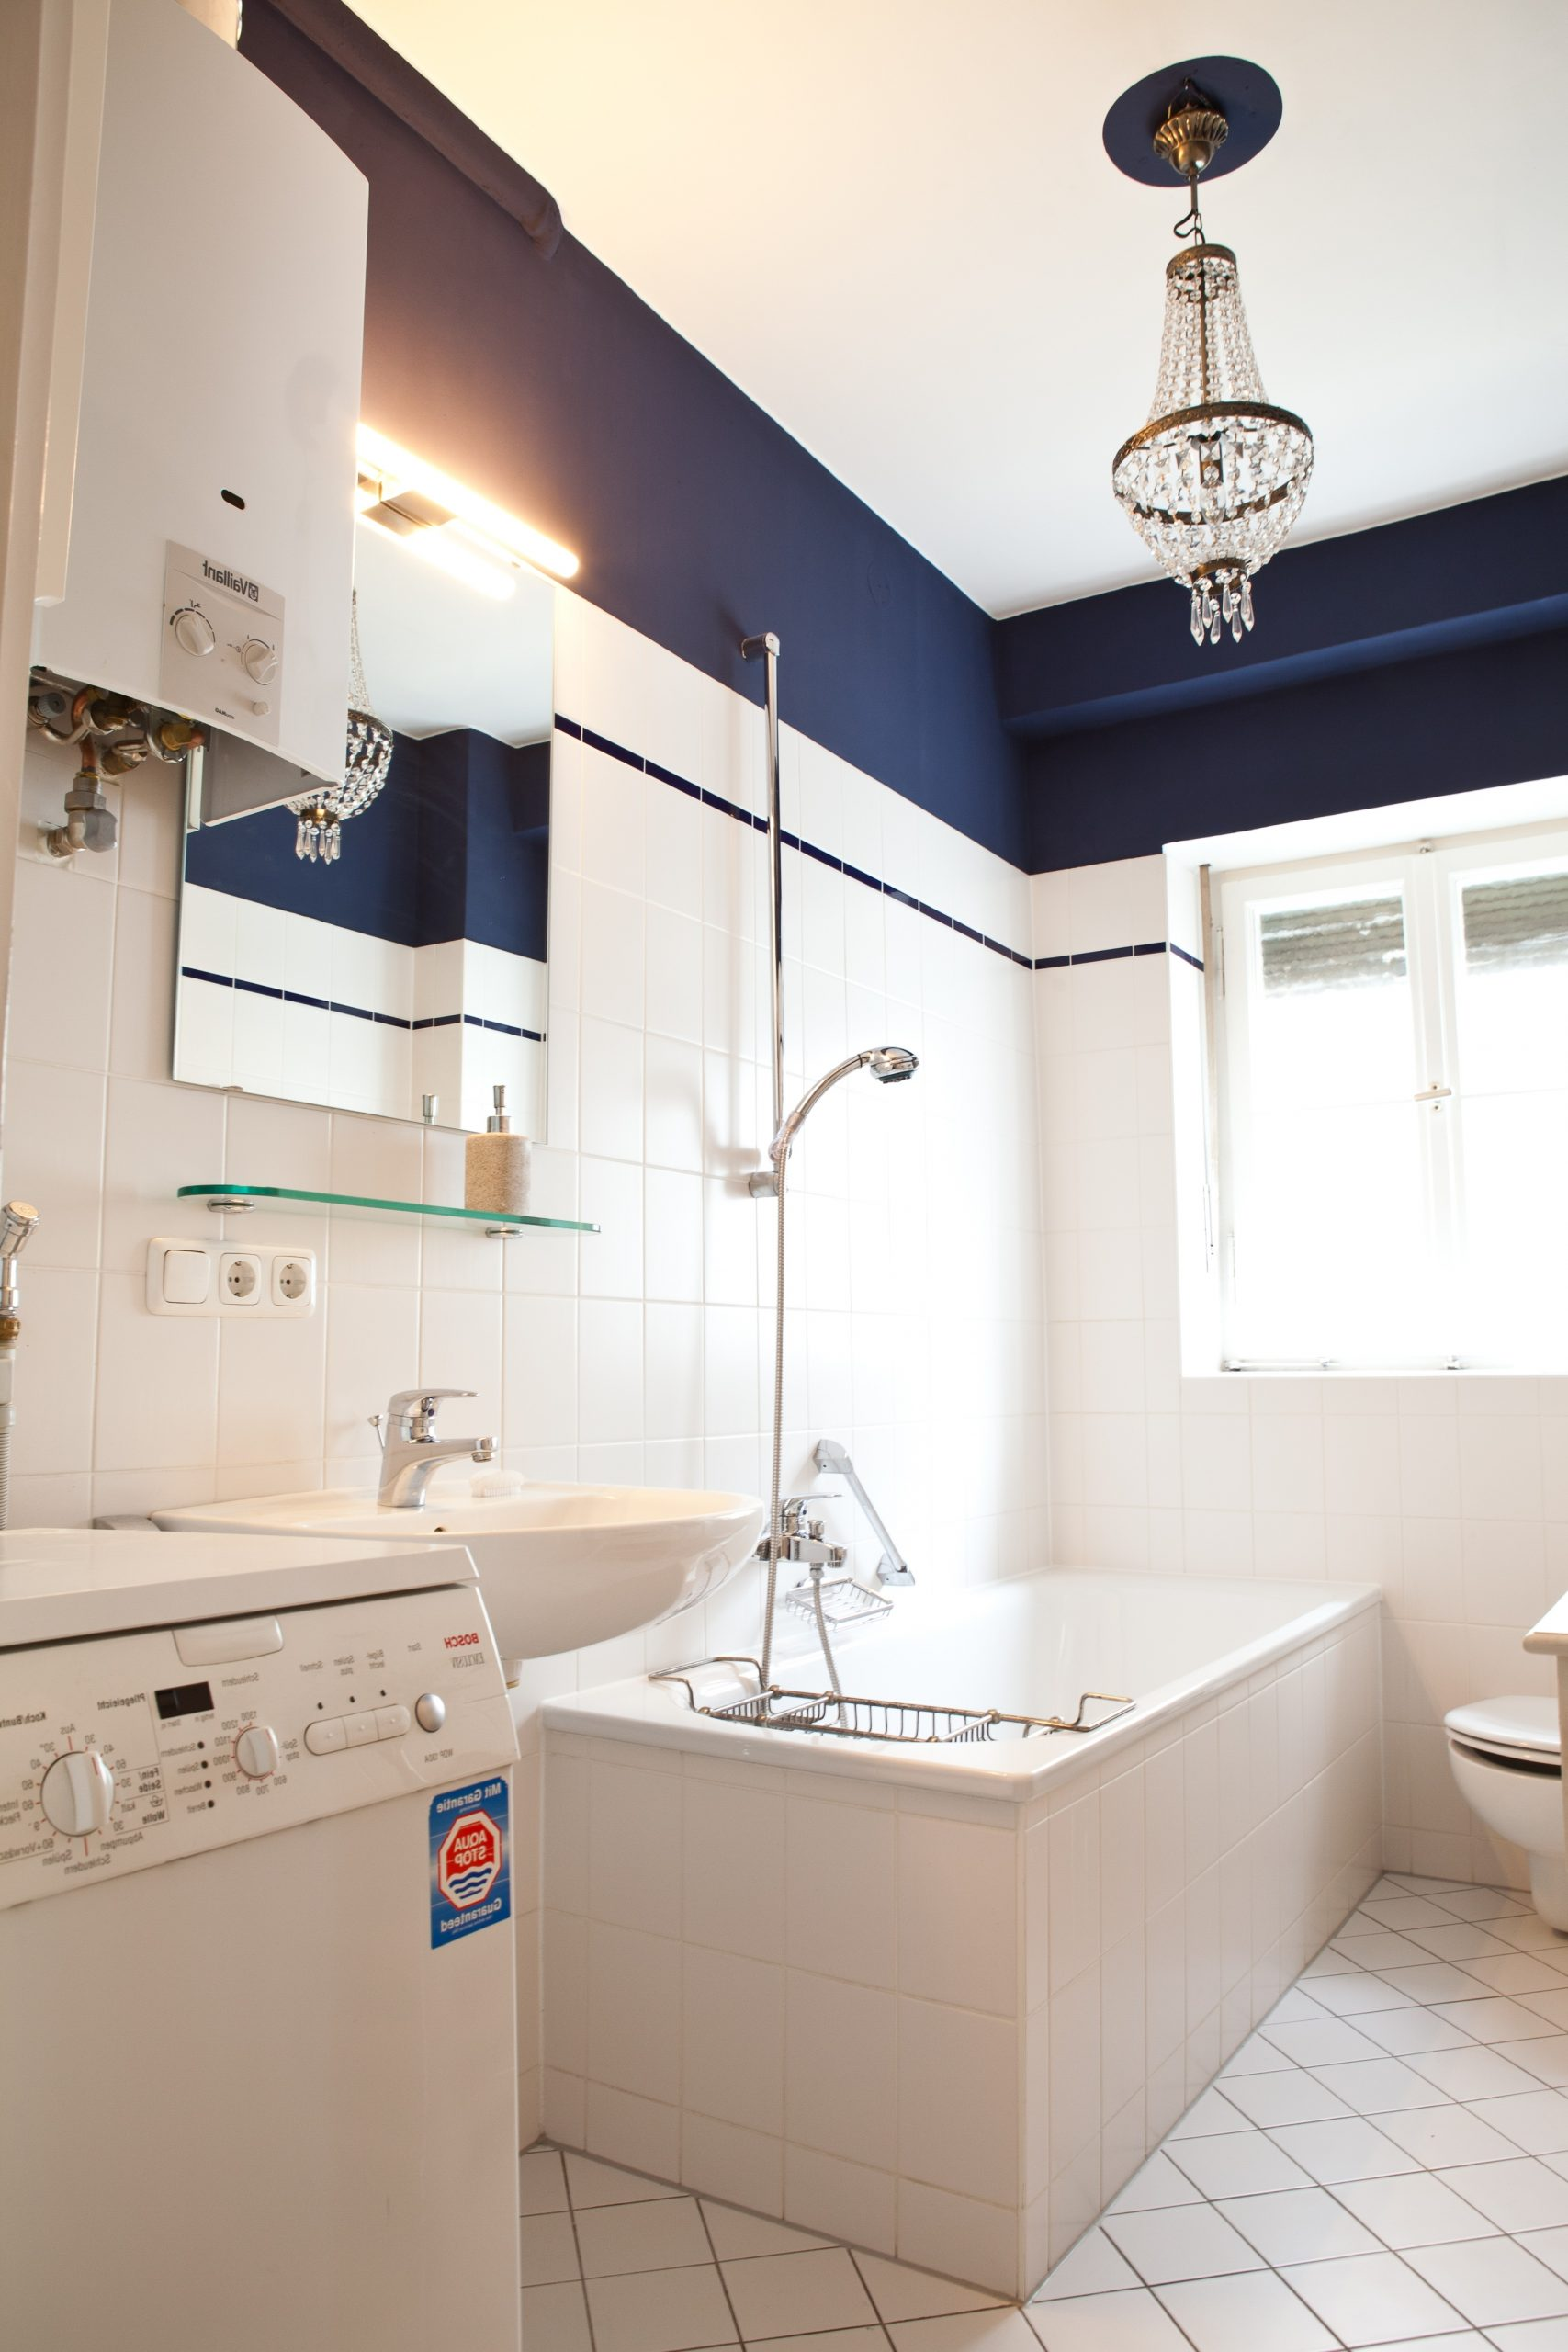 Airbnb Bathroom Commercial Photography Michael And Carina 10+ Airbnb Bathroom Ideas